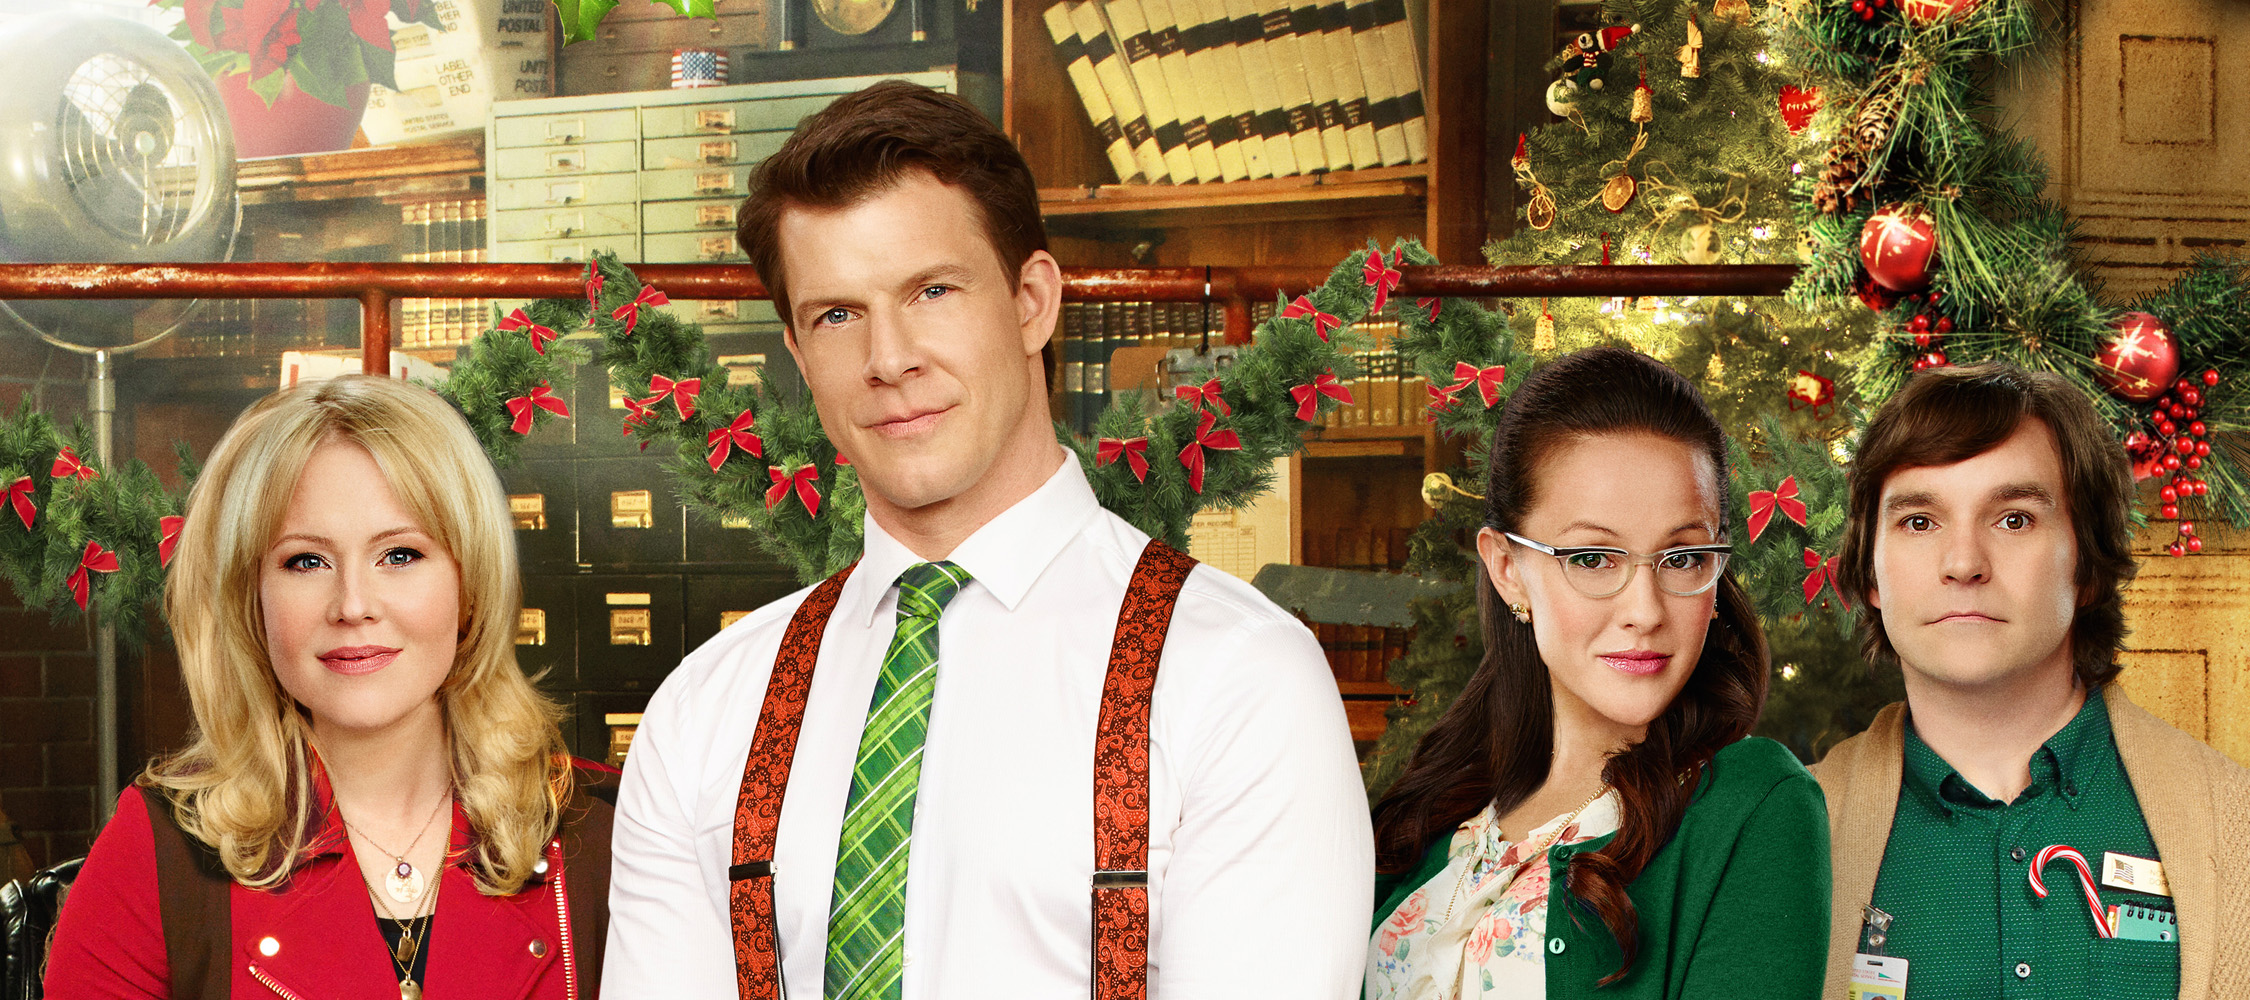 """SIGNED, SEALED, DELIVERED"" MOVES TO HALLMARK MOVIES & MYSTERIES WITH NEW EXTENDED FORMAT"